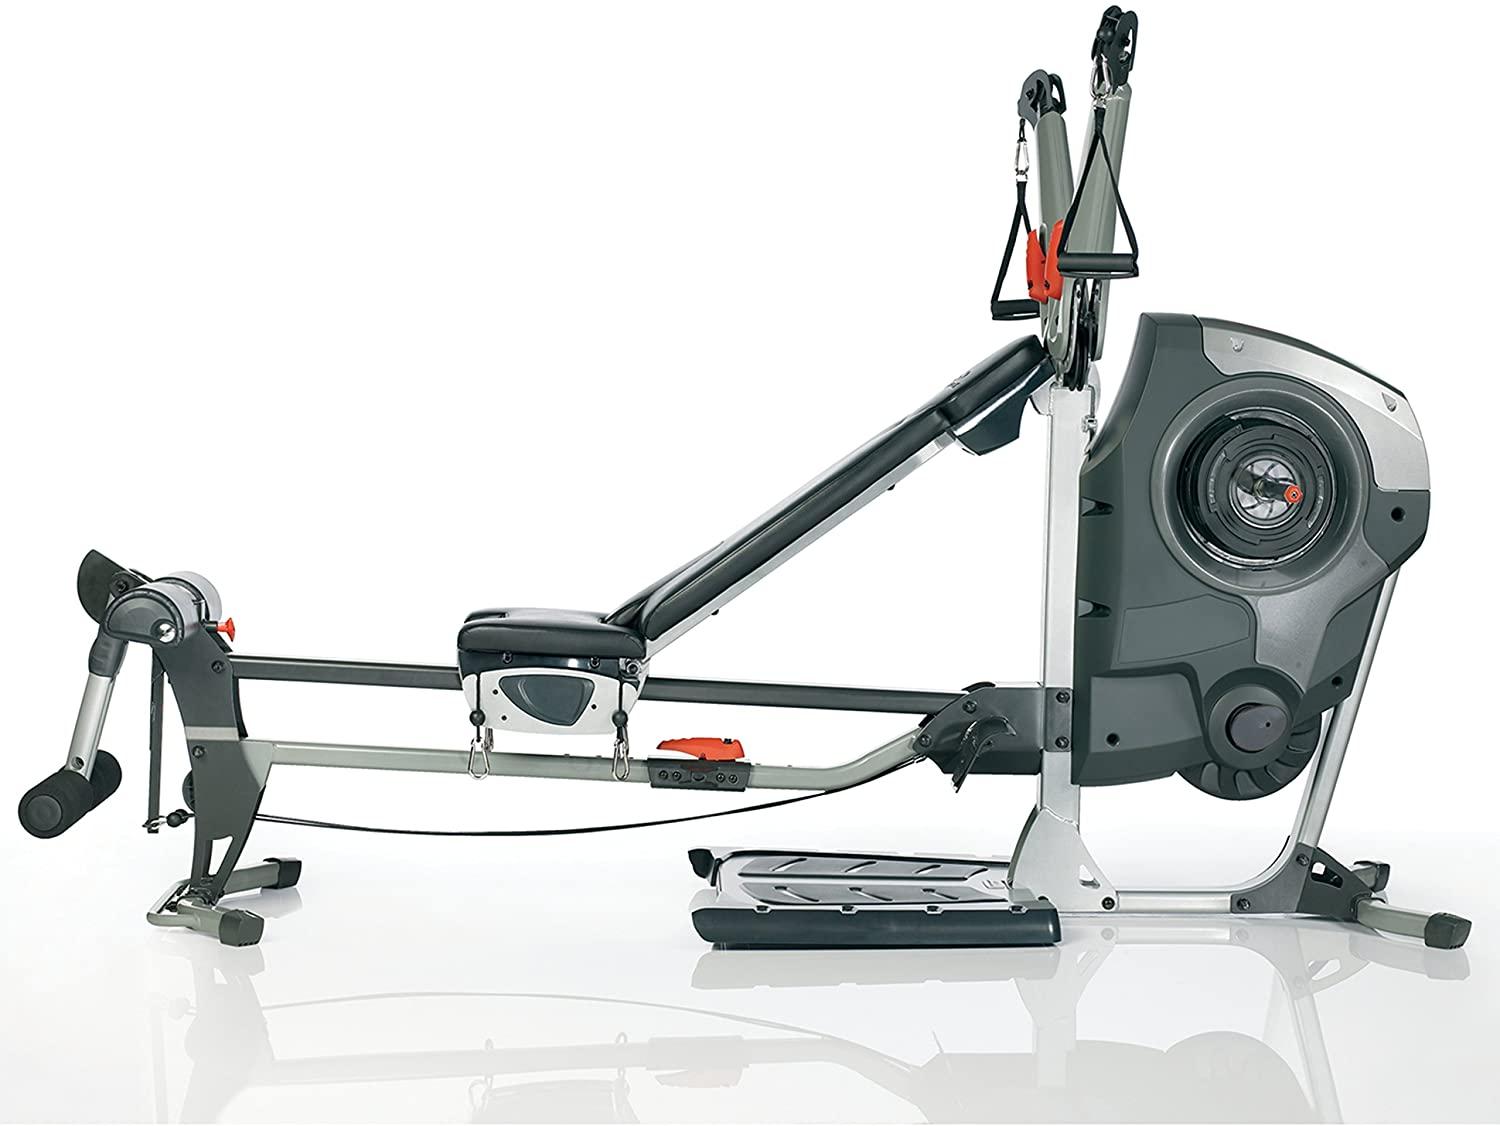 Features Of The Bowflex Revolution Home Gym